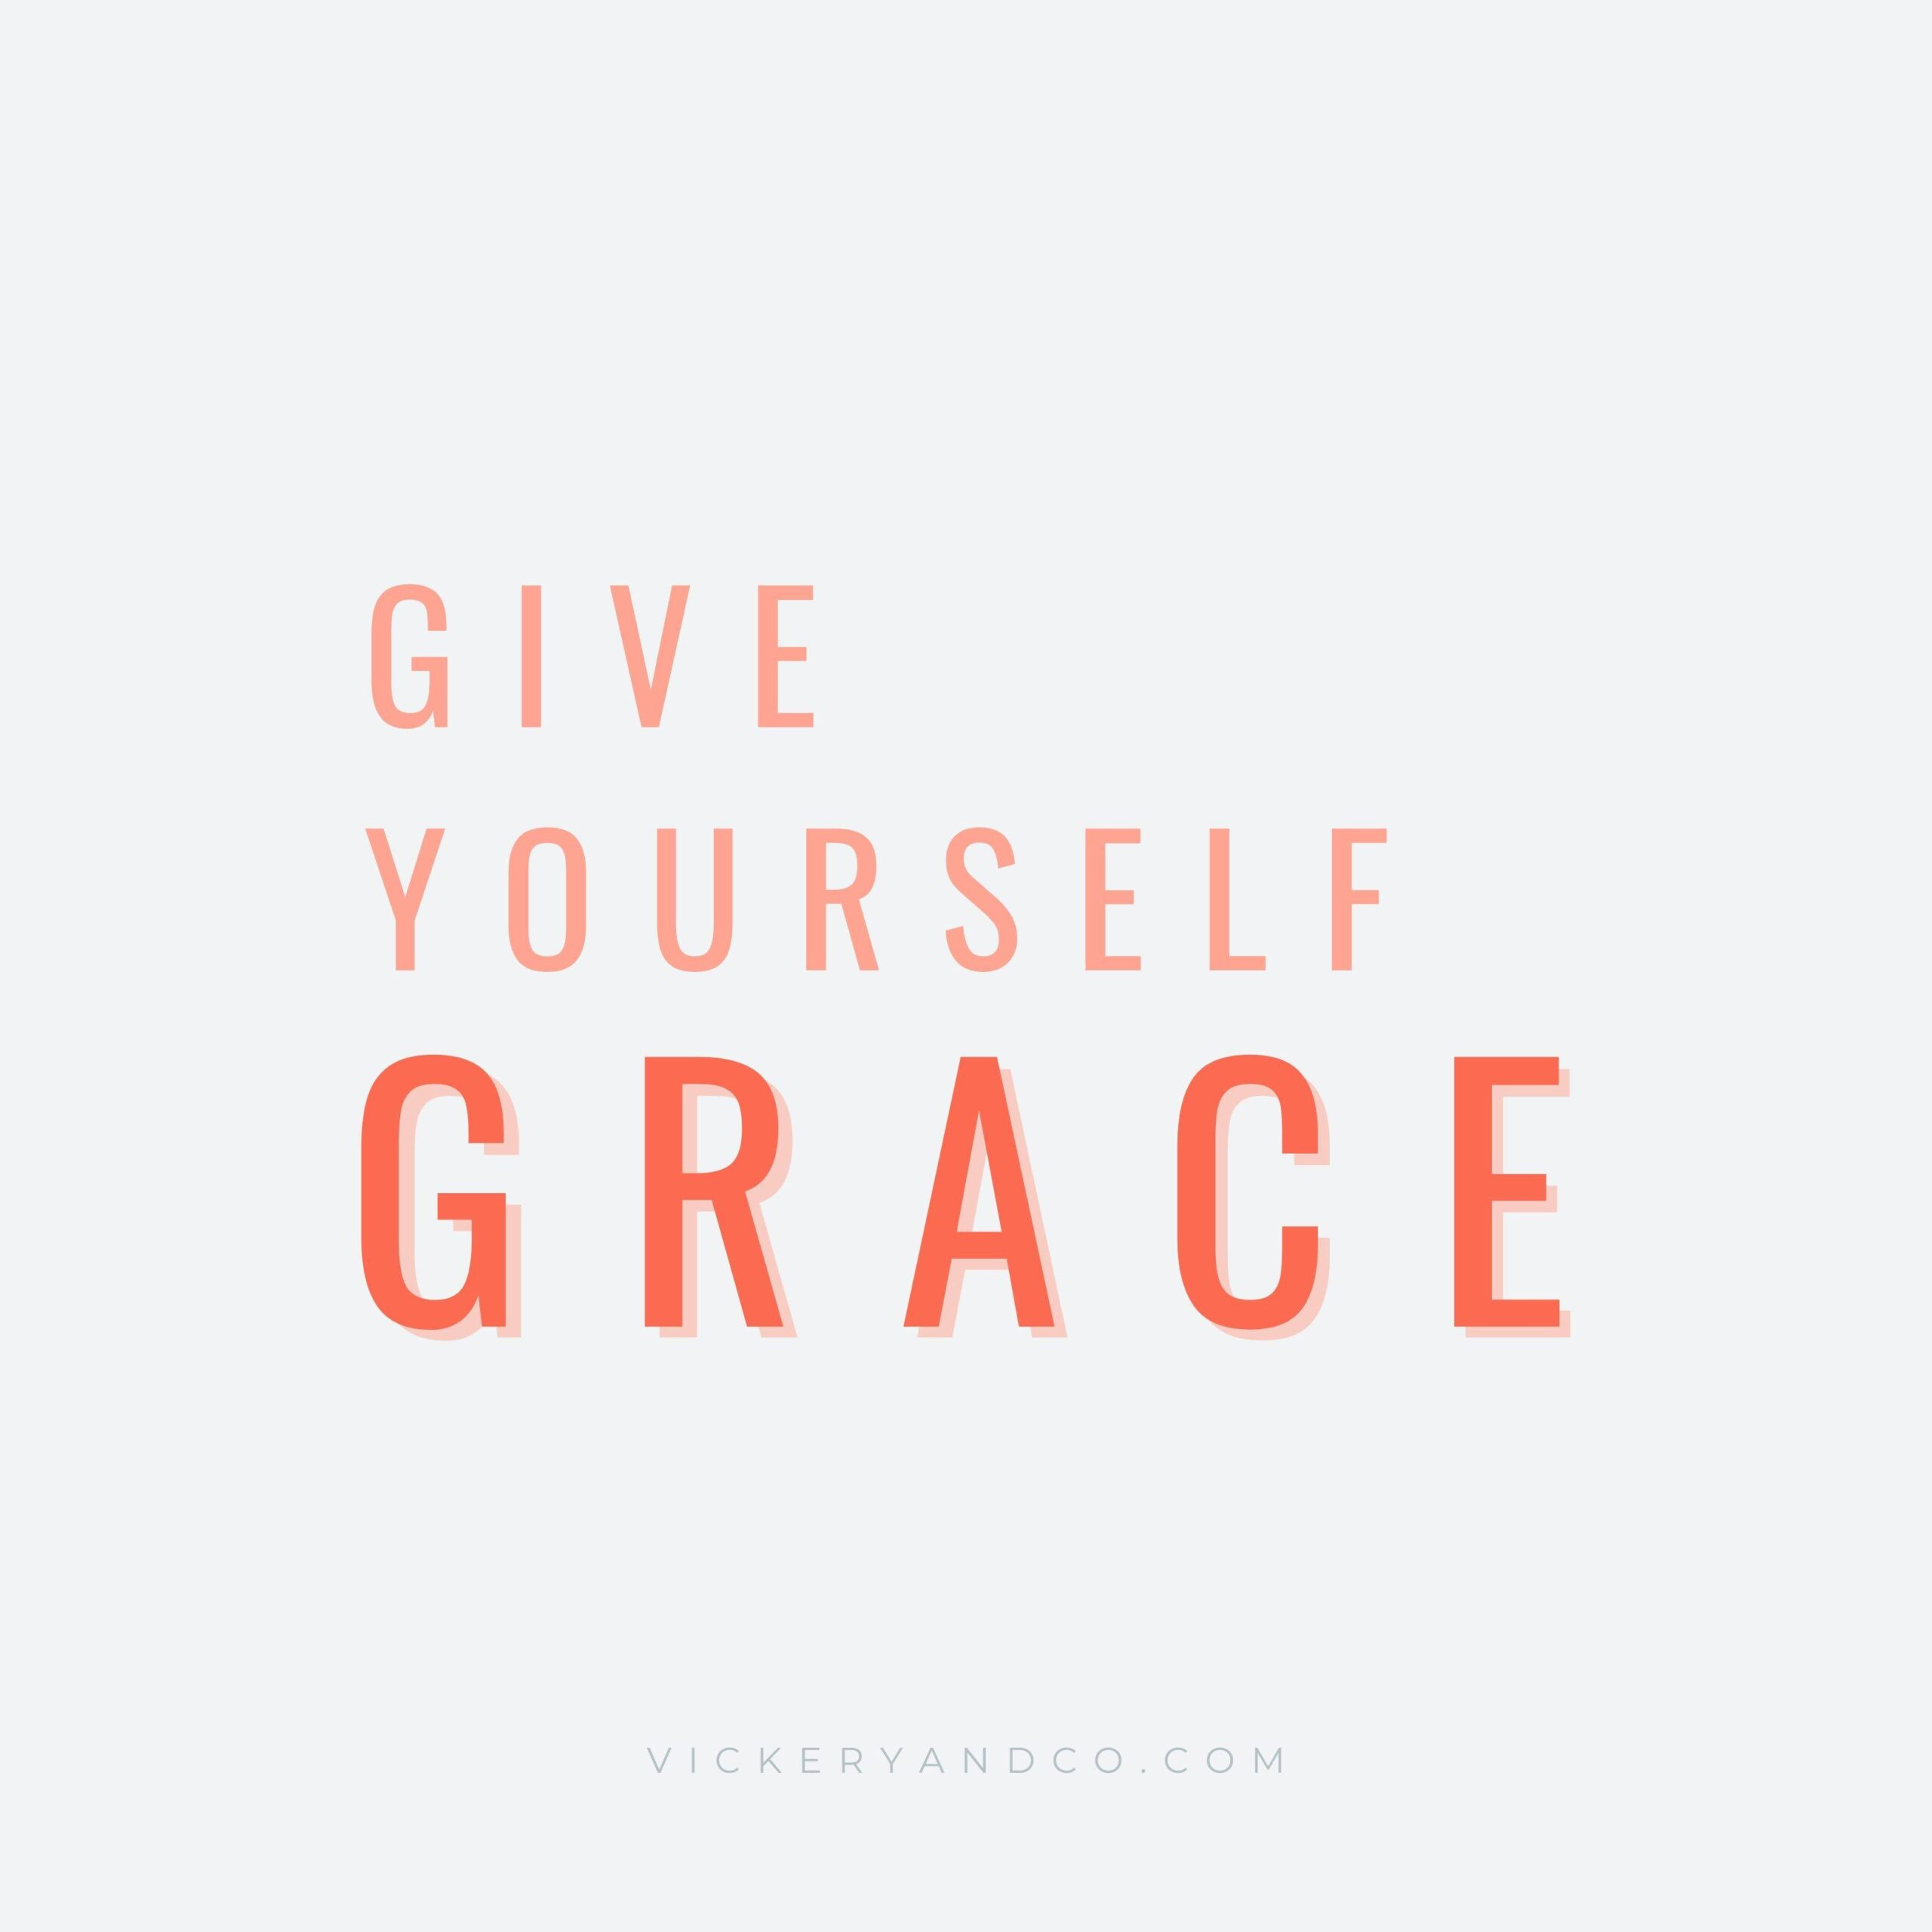 Trust yourself! Heather Vickery, Brave, Leadership, self-trust, entrepreneurship, Vickery and Co. Give yourself space and grace.